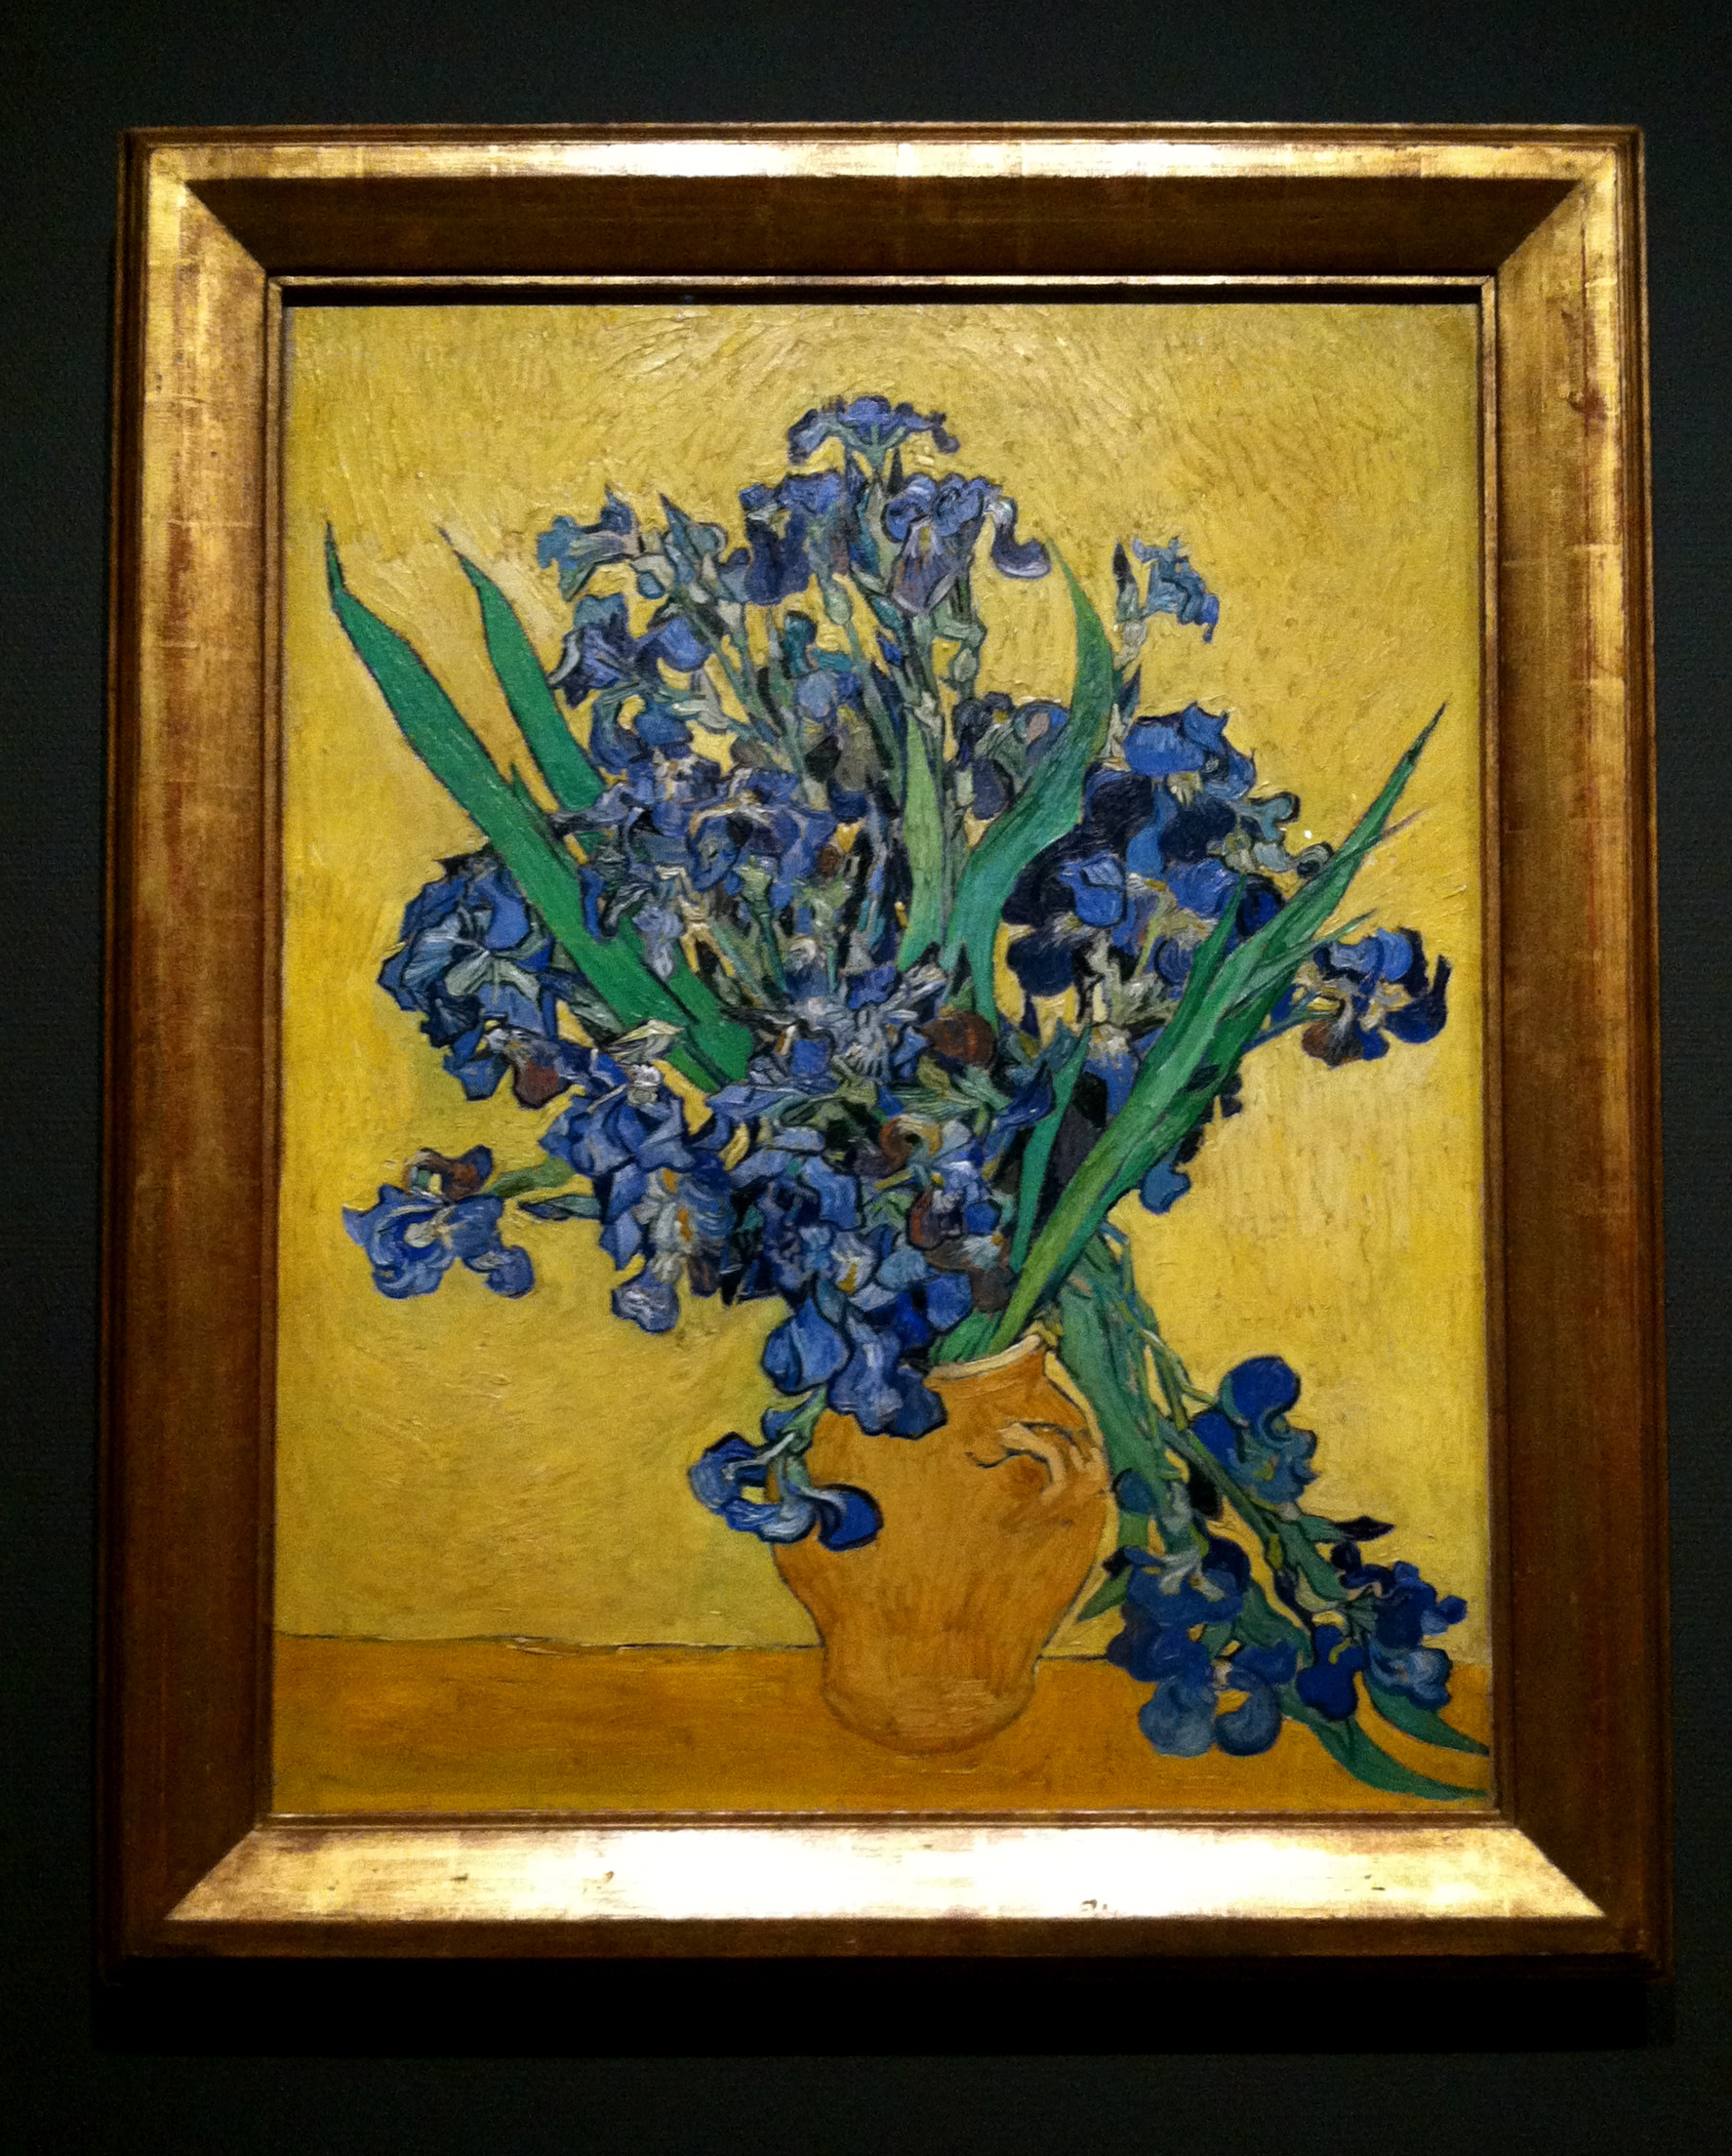 This is one of my favorites from the Van Gogh museum. This might also be one of the pieces that I was NOT supposed to photograph.